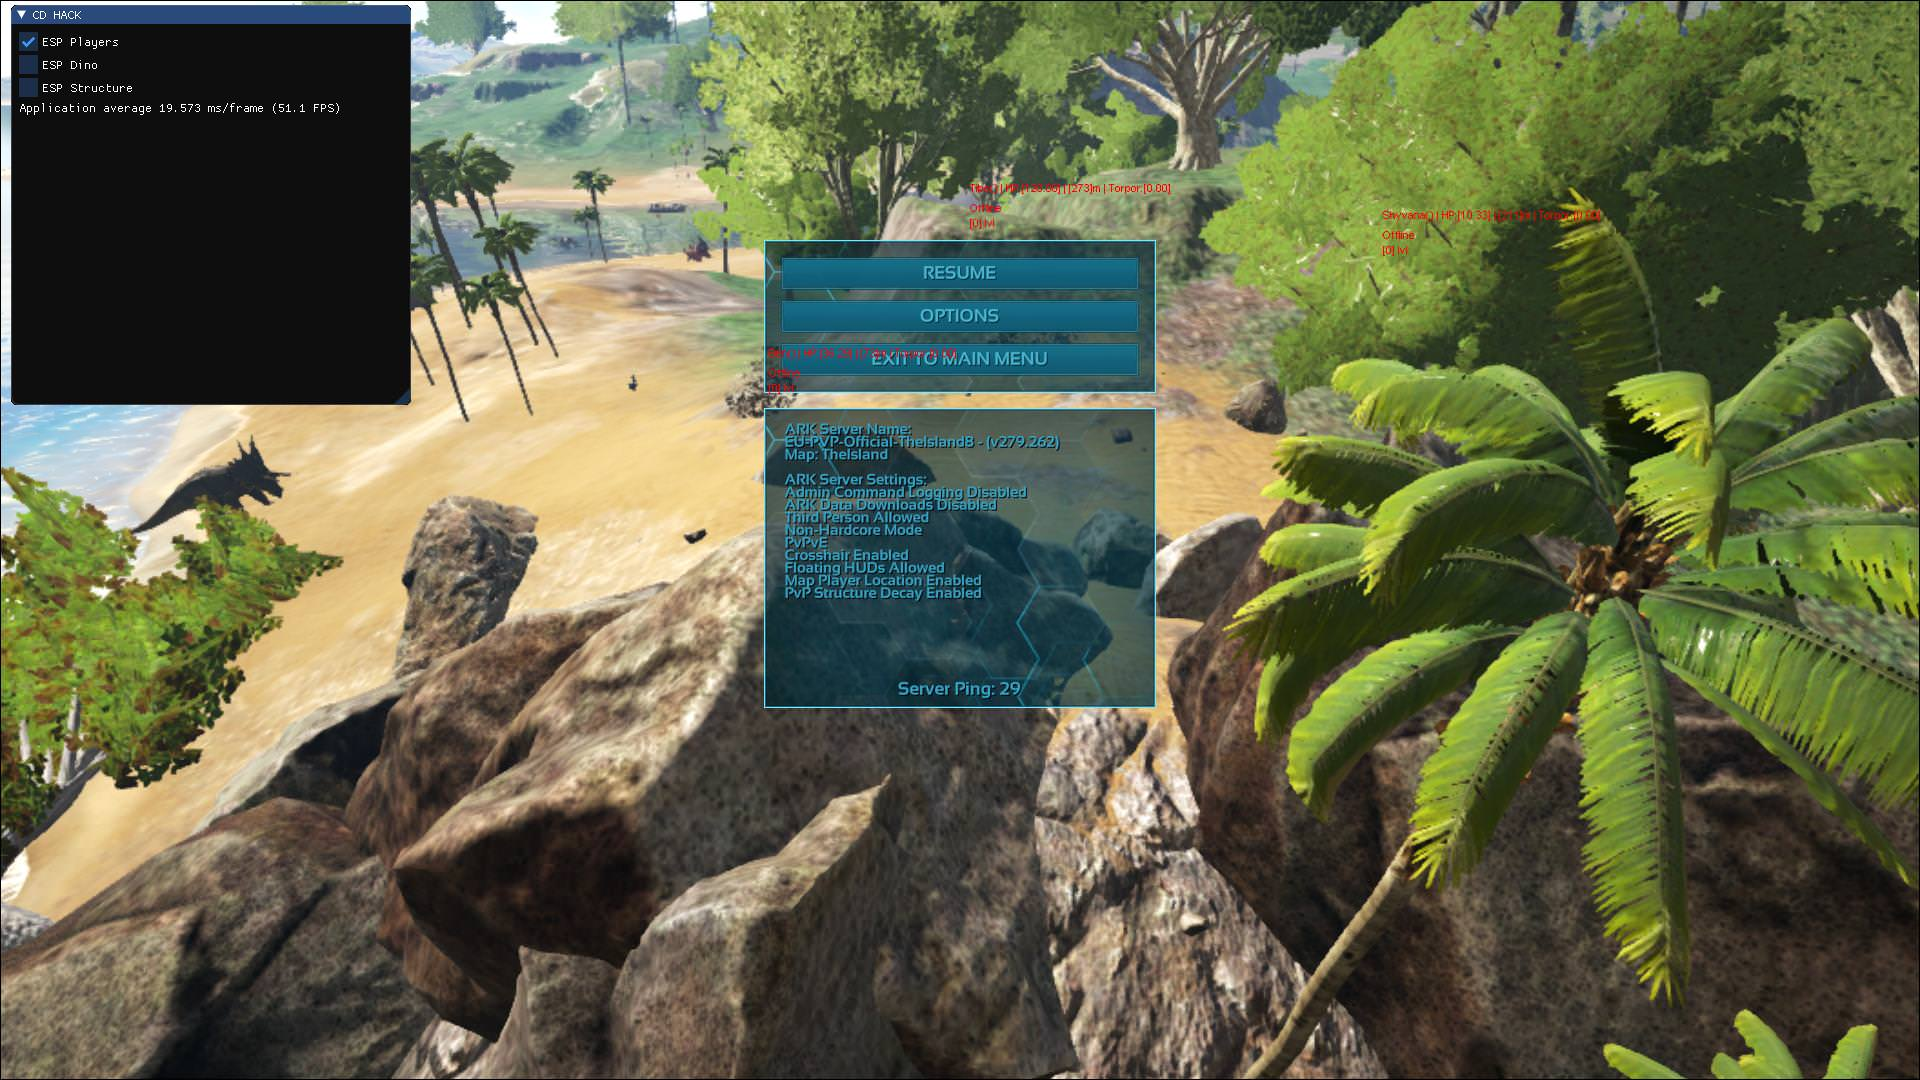 Selling] CDHack for ARK: Survival Evolved - private cheat